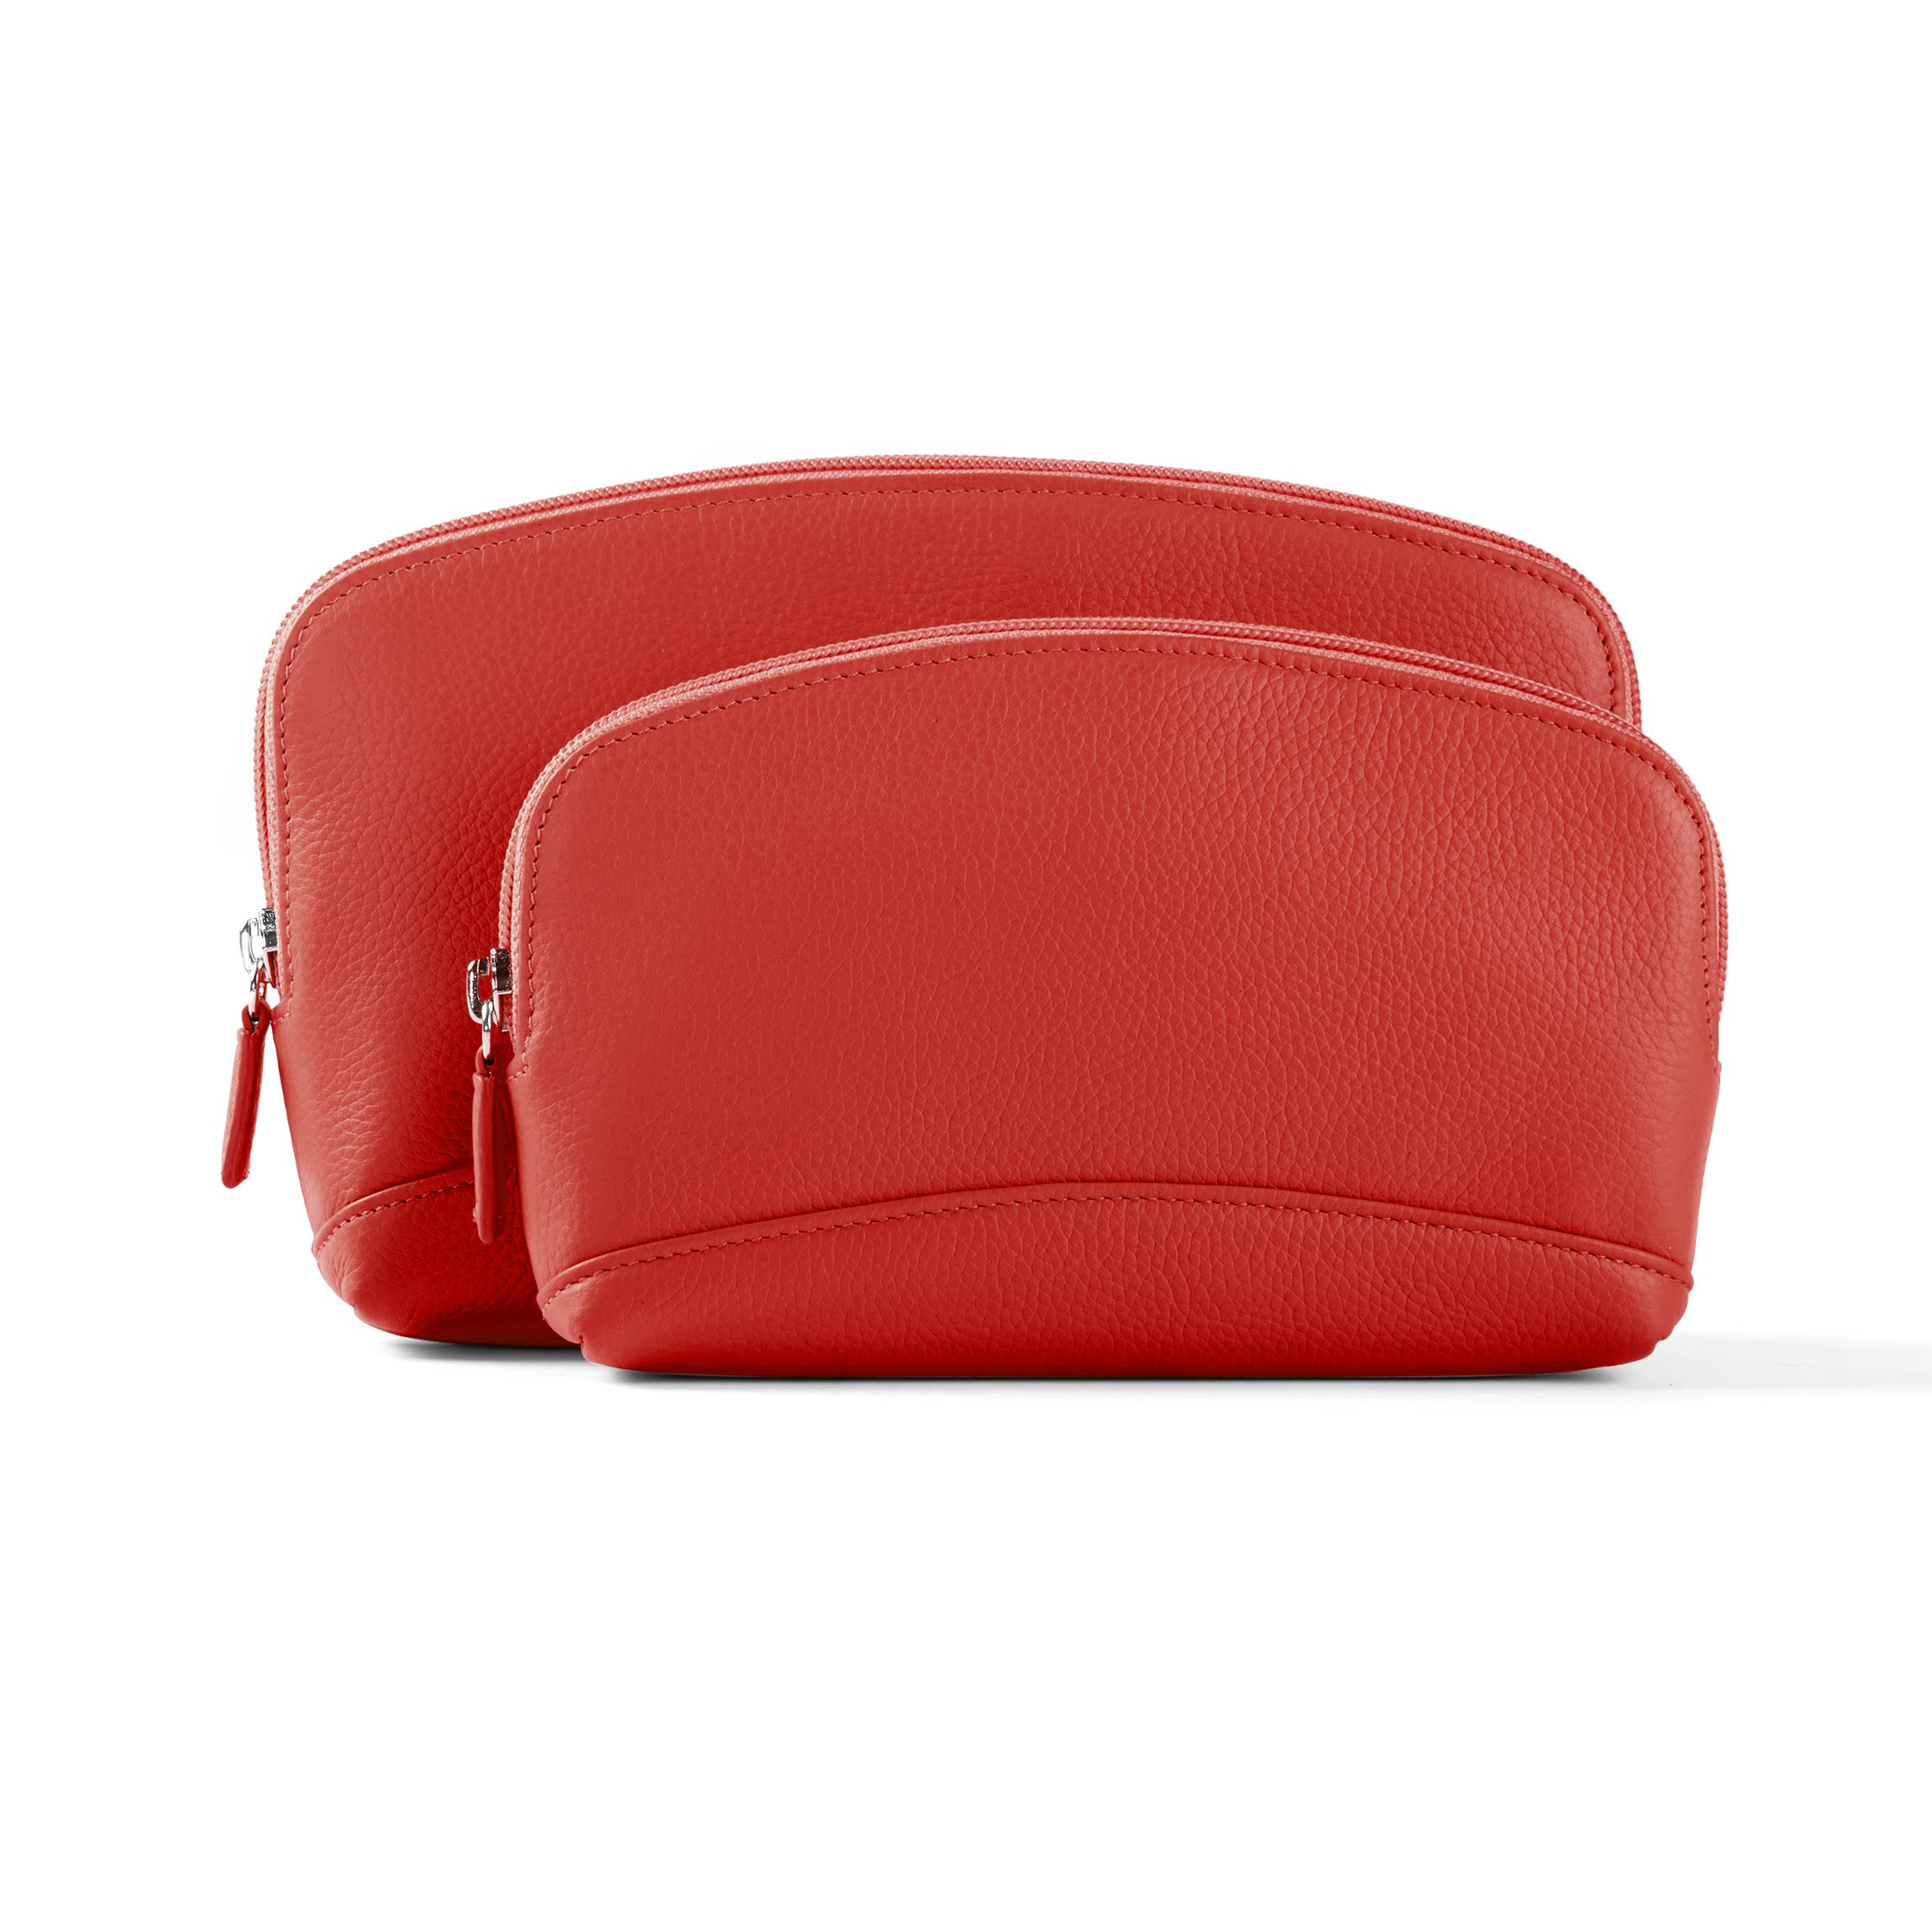 Cosmetic Bag Set - Full Grain Leather Leather - Scarlet (red)